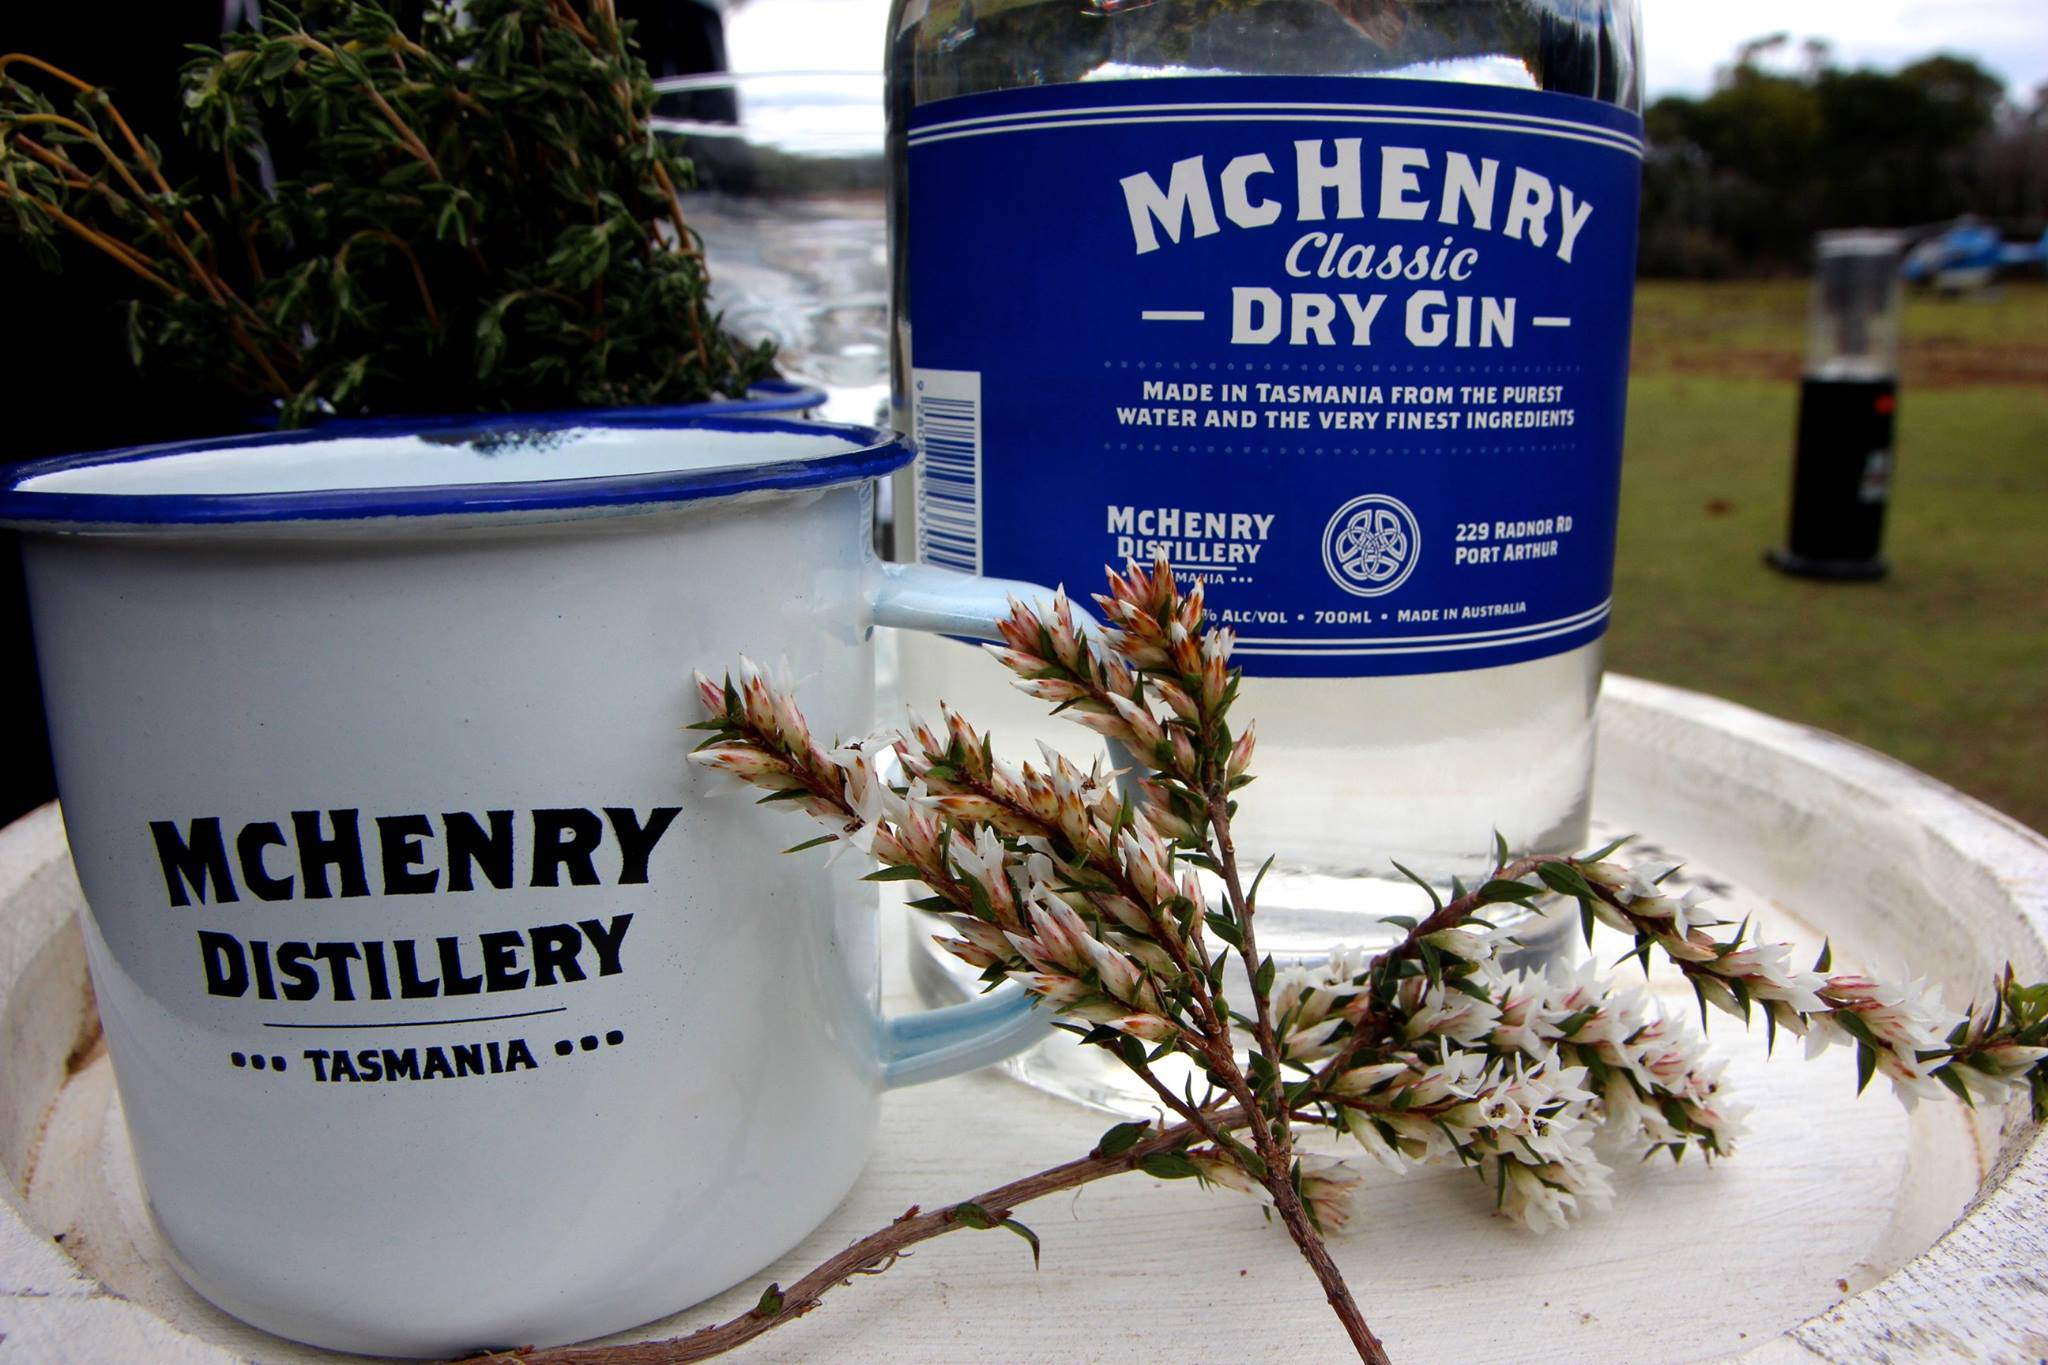 McHenry Distillery. The southernmost distillery in the world and the classic gin here, one of the first ones.